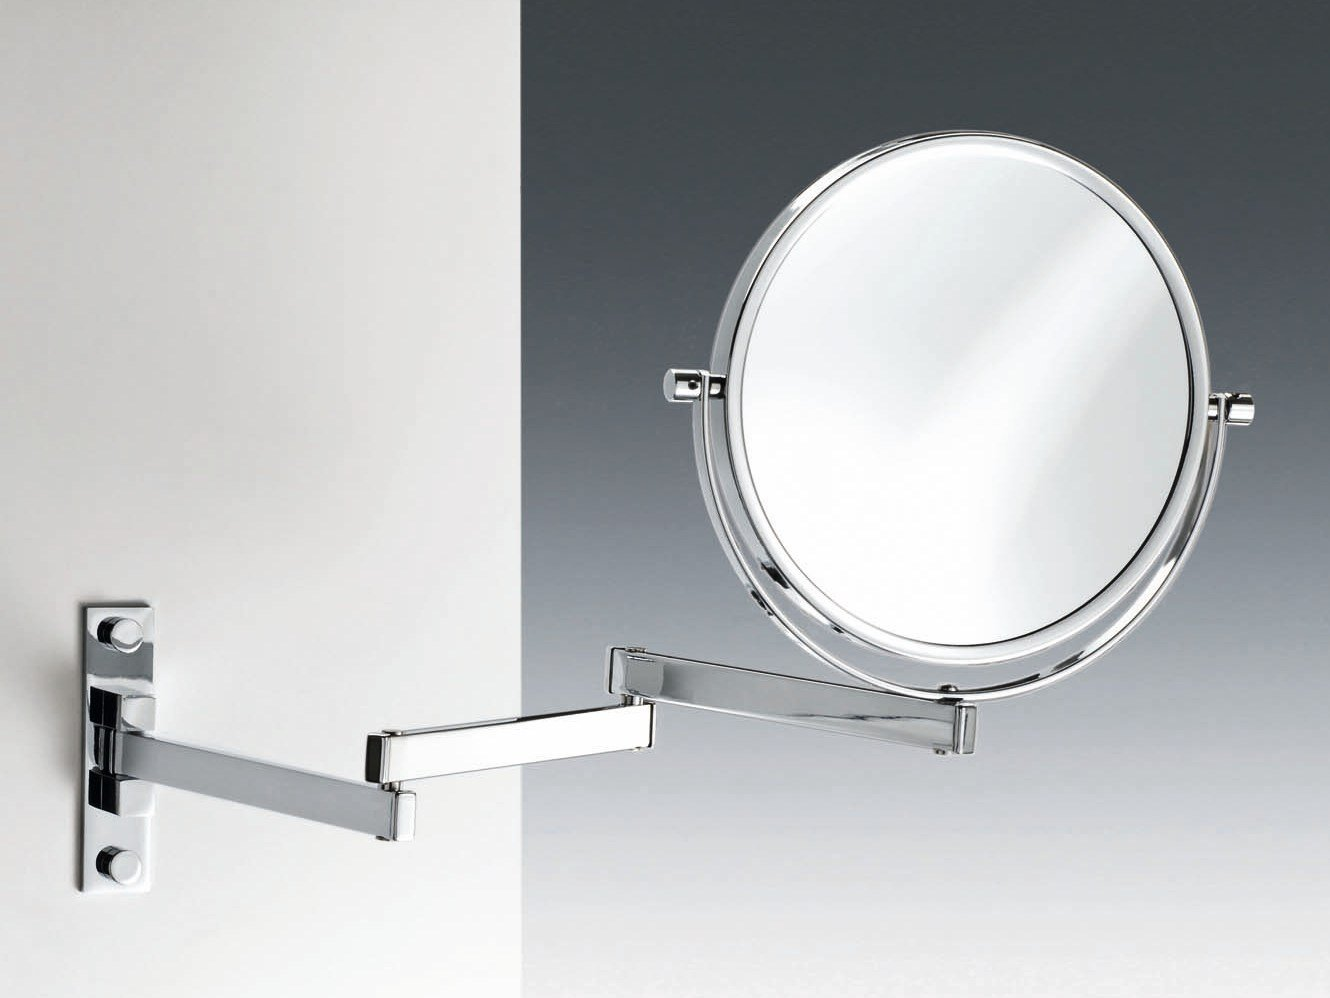 Round wall mounted shaving mirror spt 30 by decor walther amipublicfo Gallery